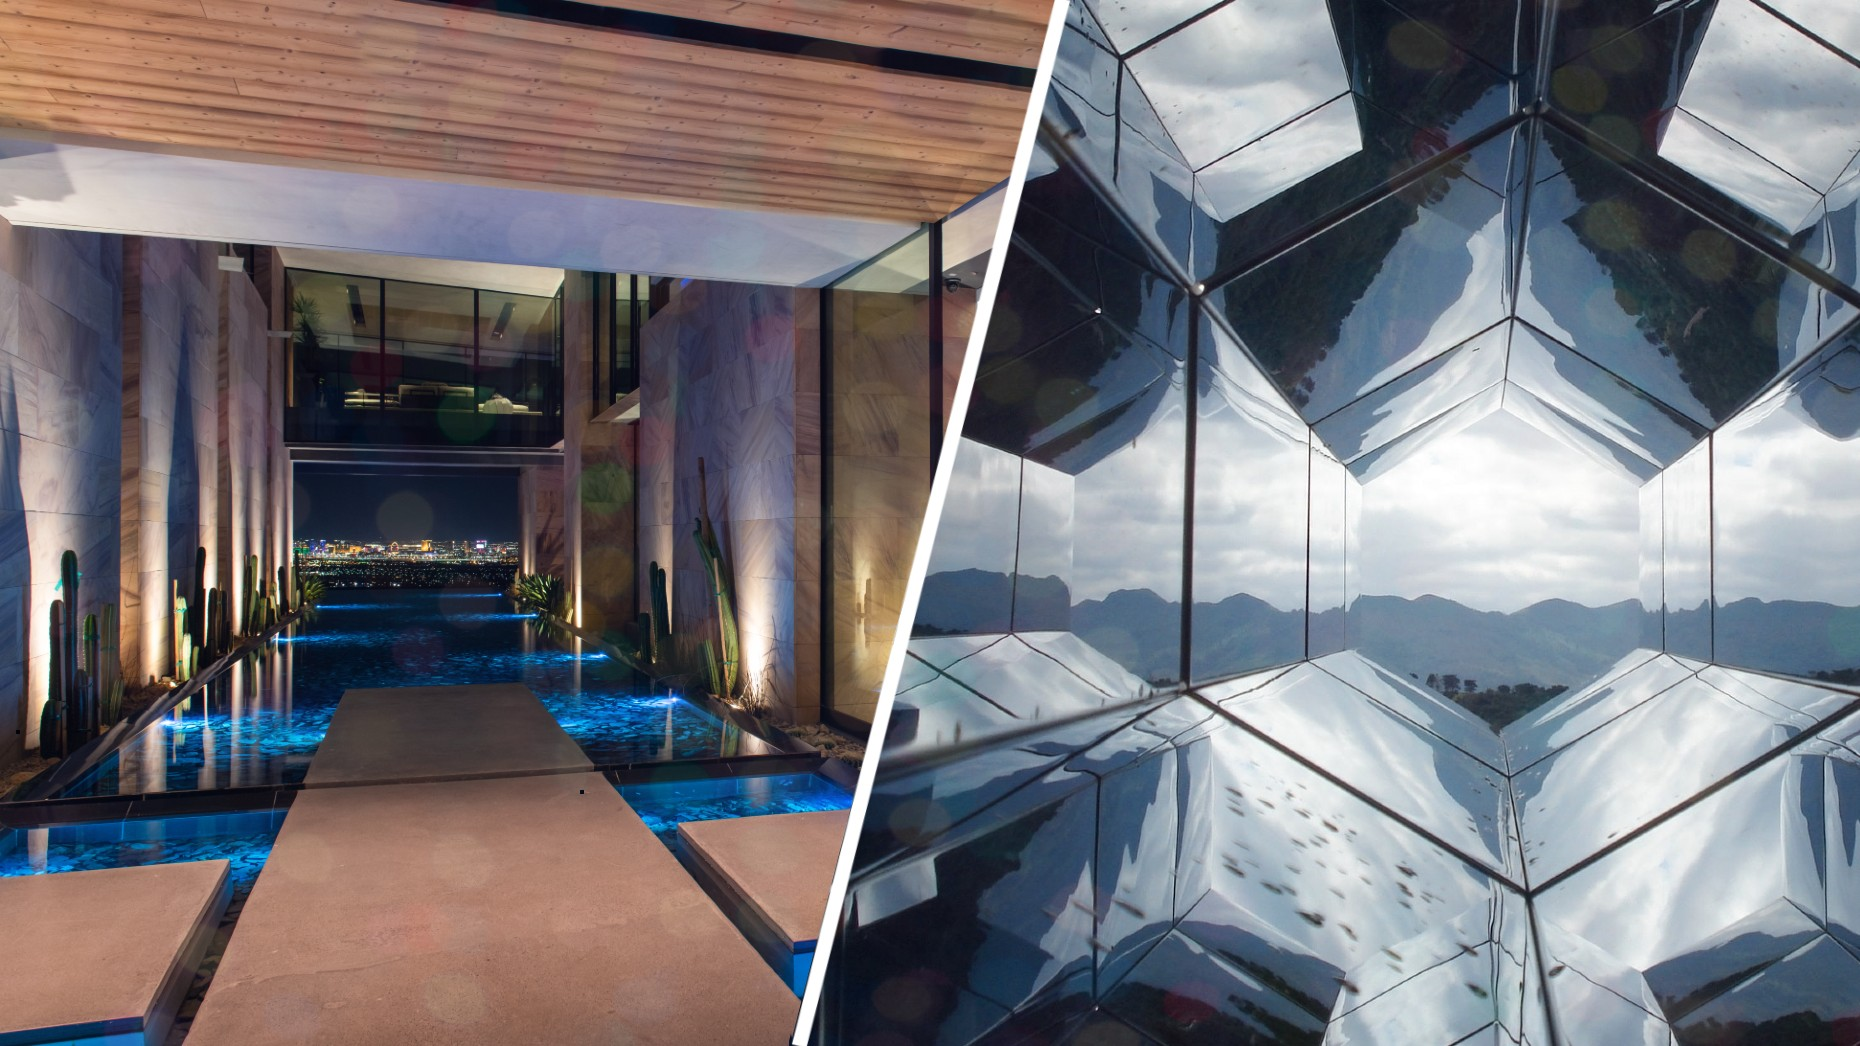 inman.com - Lillian Dickerson - The luxury home of the future is all about blurring boundaries